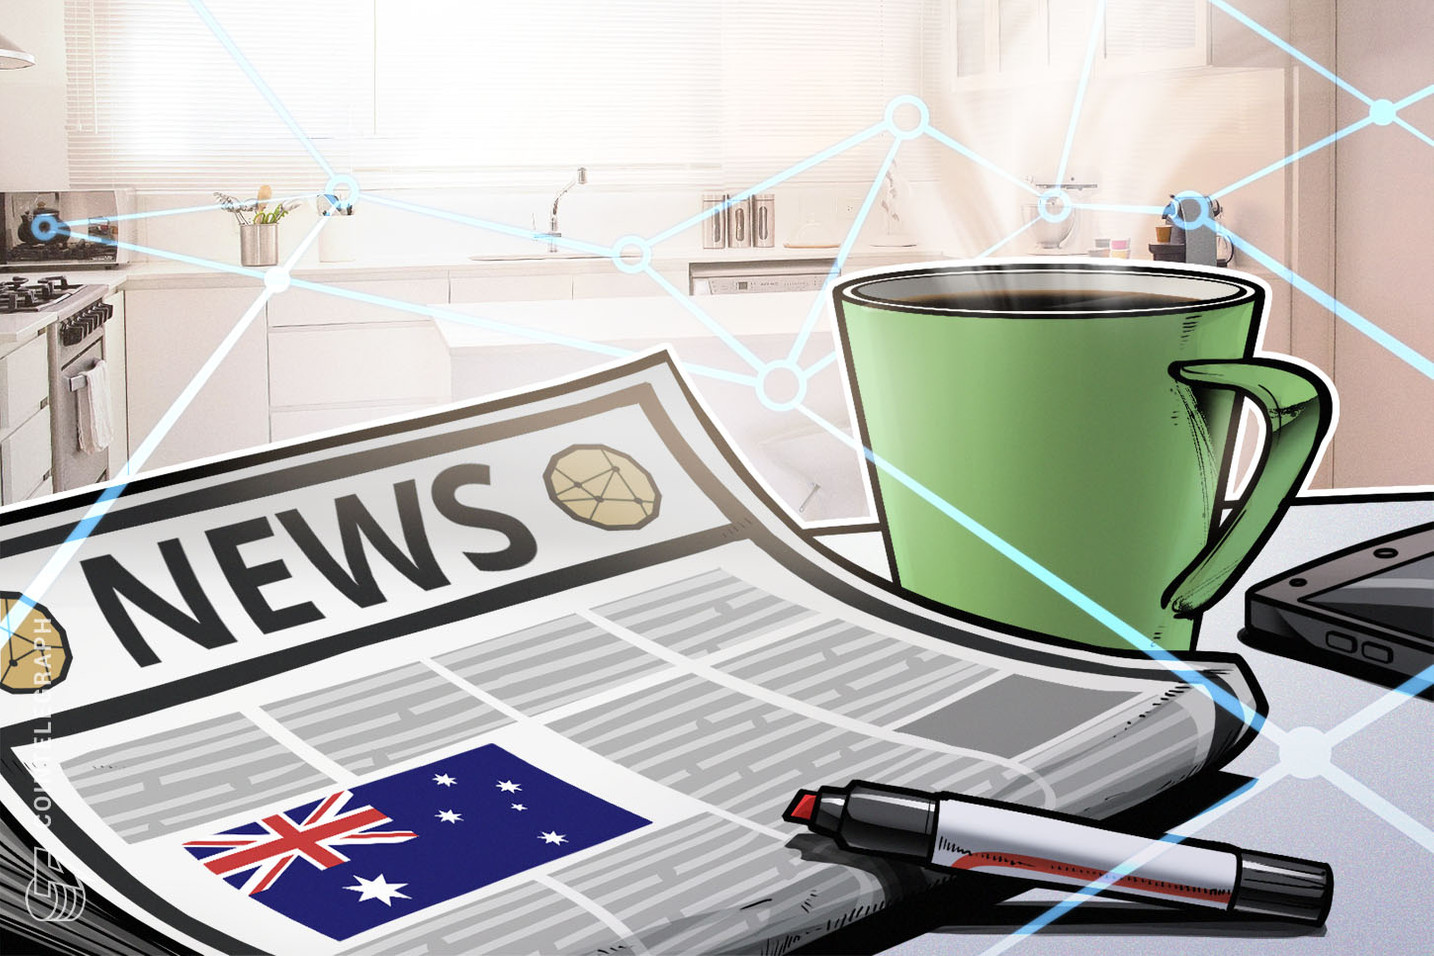 Australia, New Zealand Central Banks Don't Plan to Issue Own Cryptos